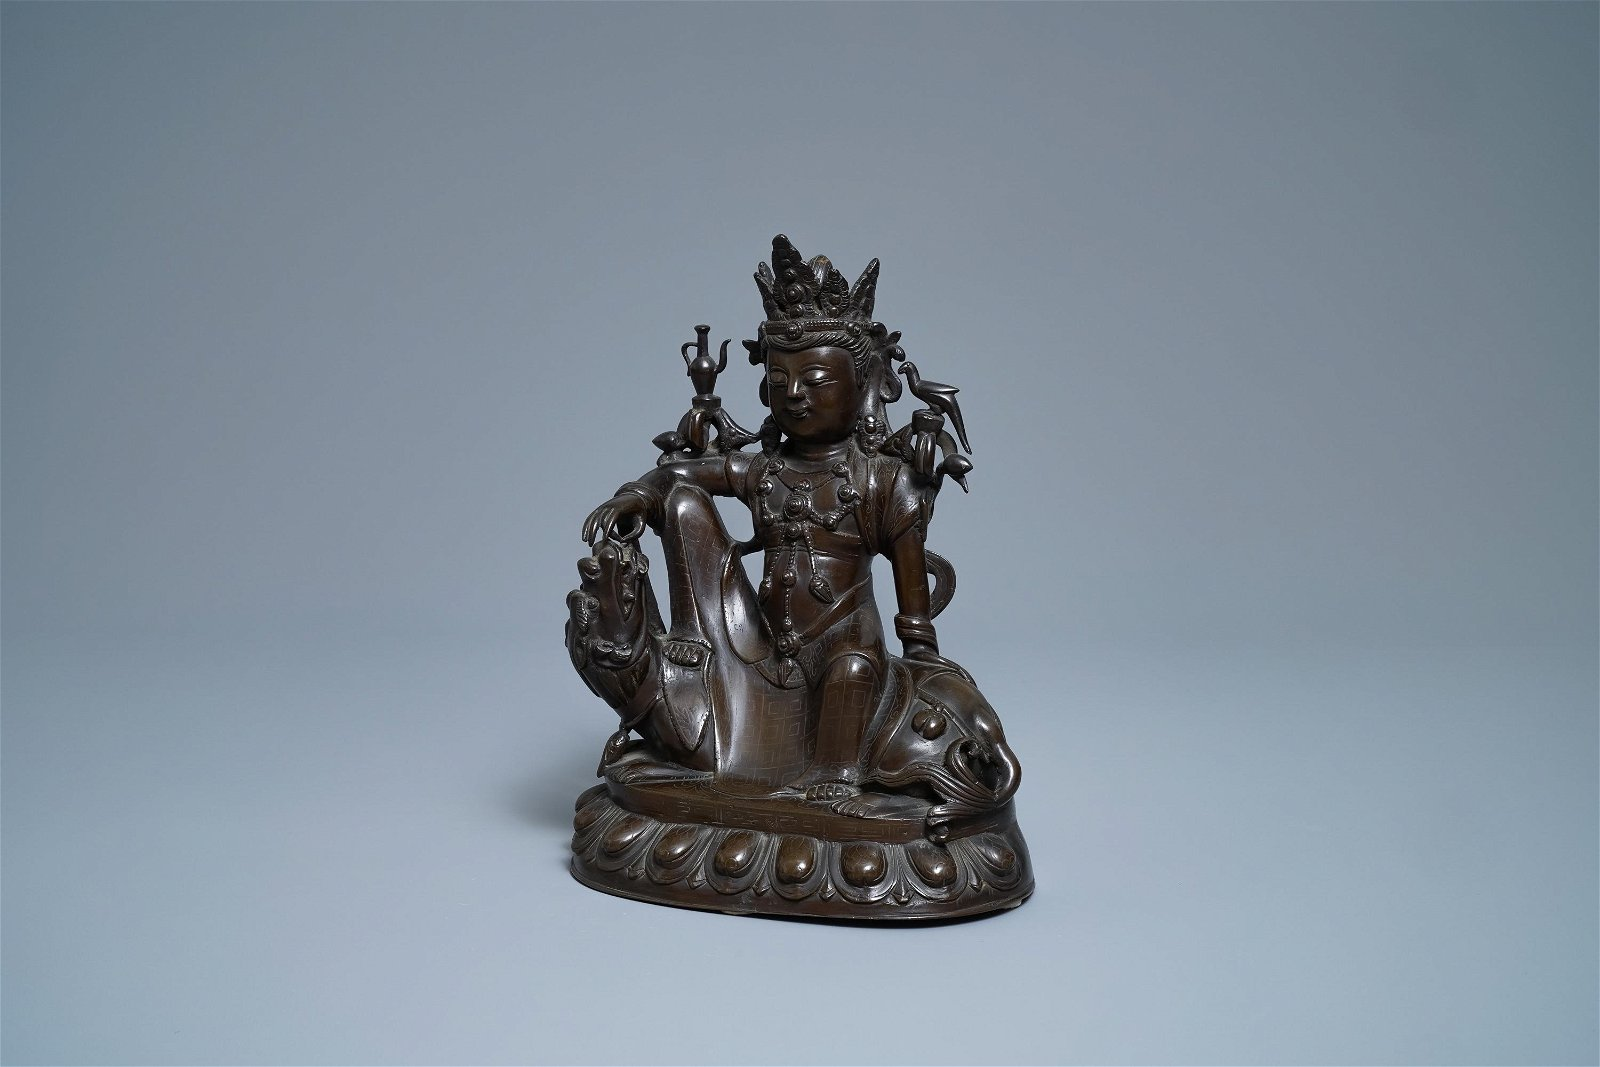 A Chinese silver-inlaid bronze figure of Guanyin on a